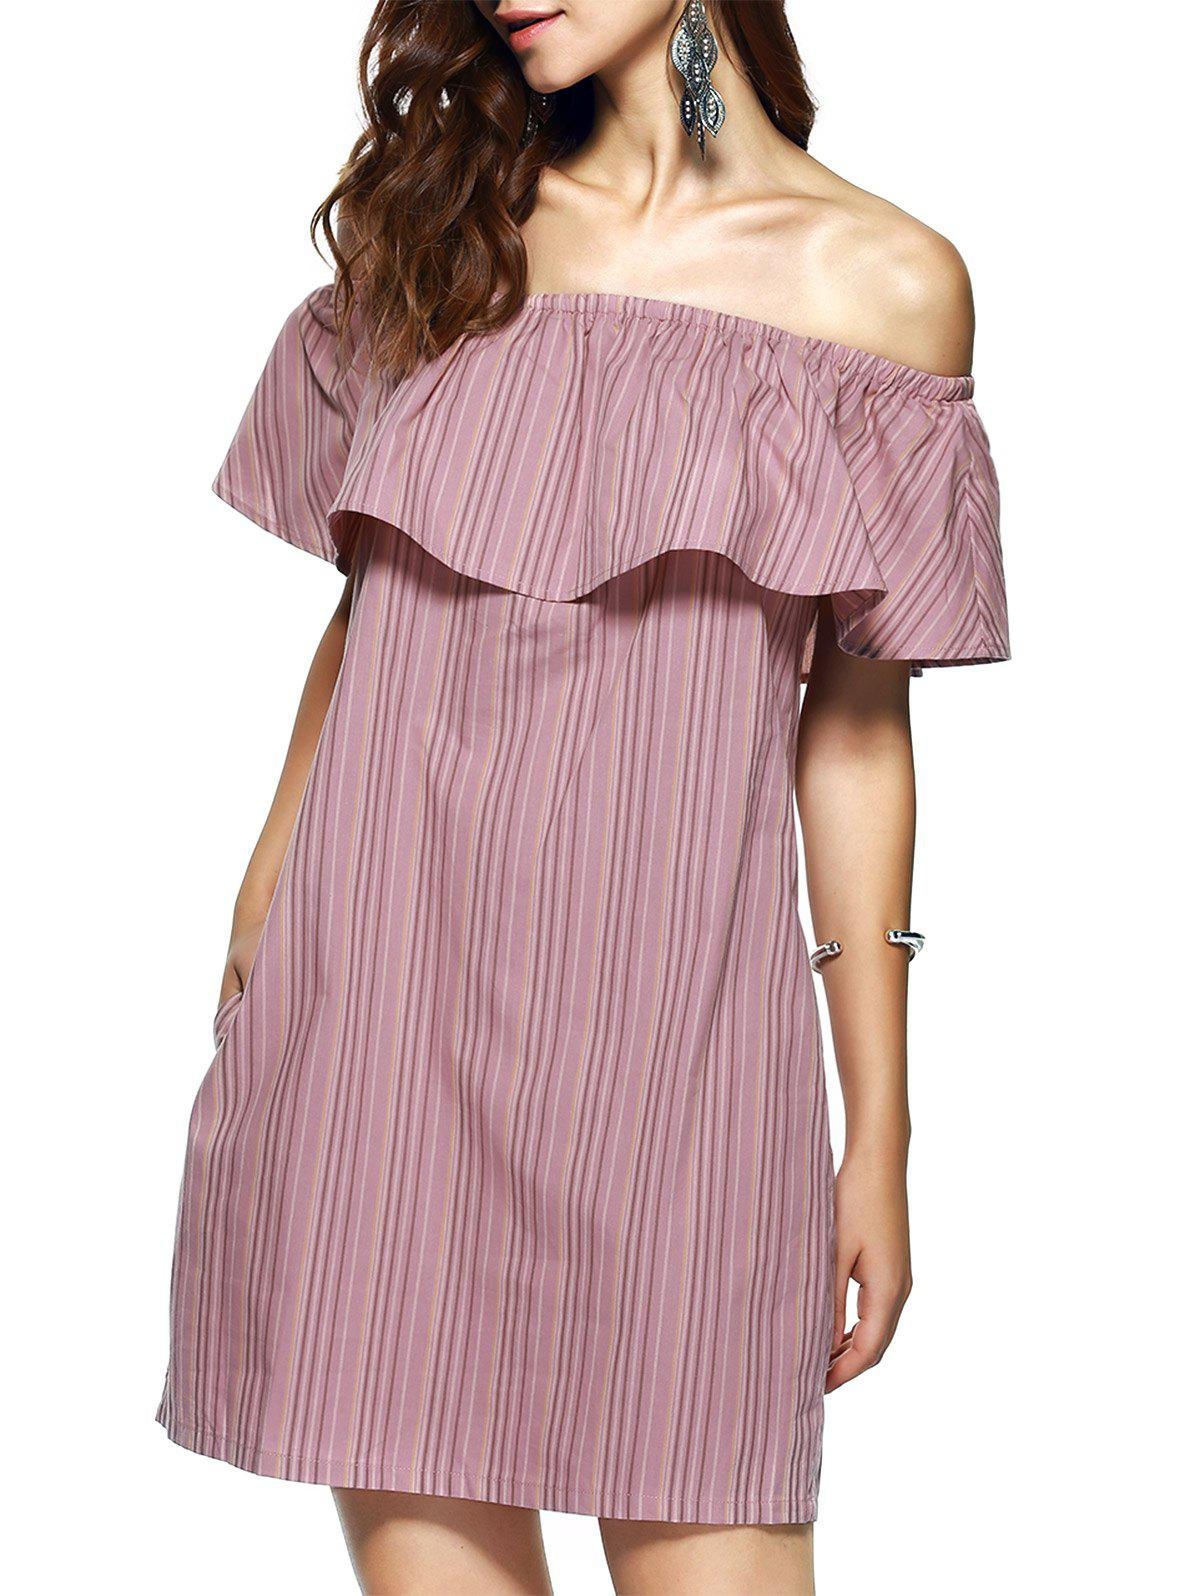 Elegant Women's Off-The-Shoulder Sleeveless Stripe Dress 184051904